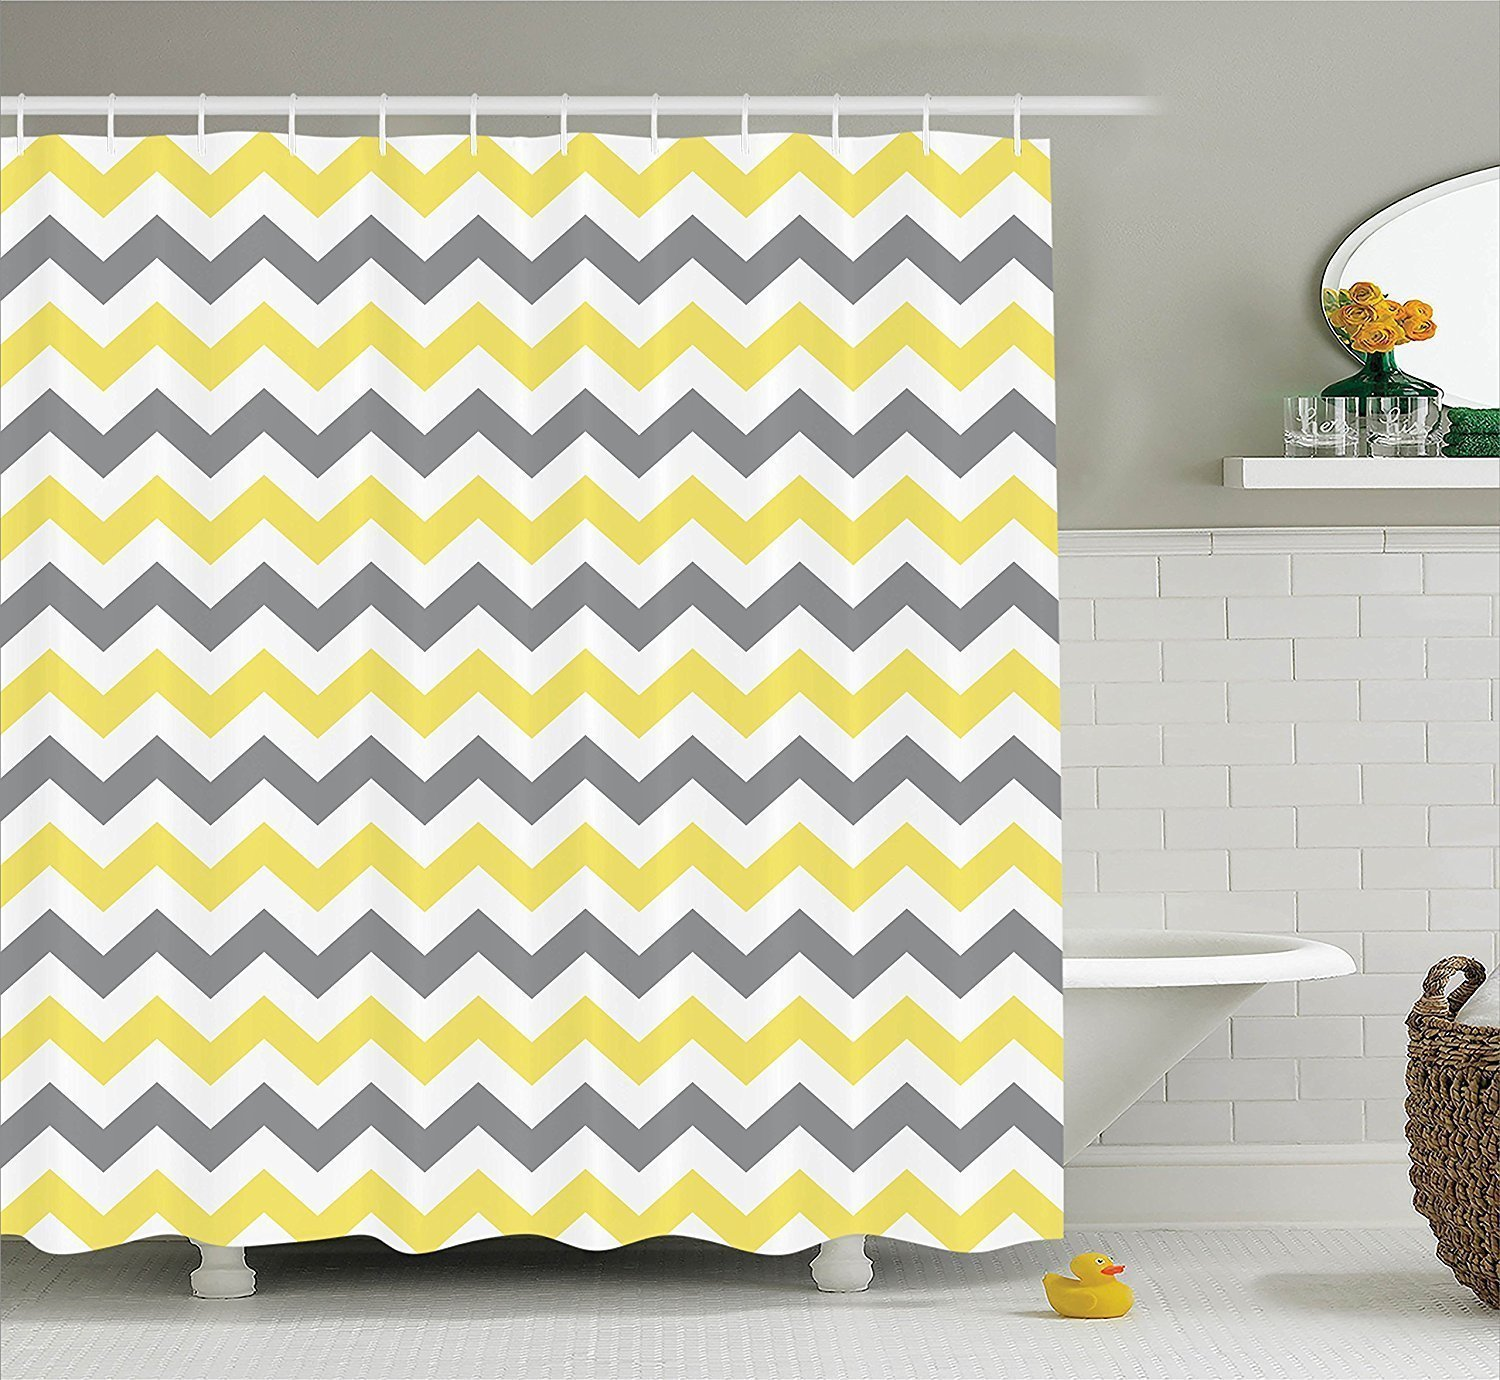 Chevron Zigzag Pattern Bathroom Decor Shower Curtain Yellow Grey ...